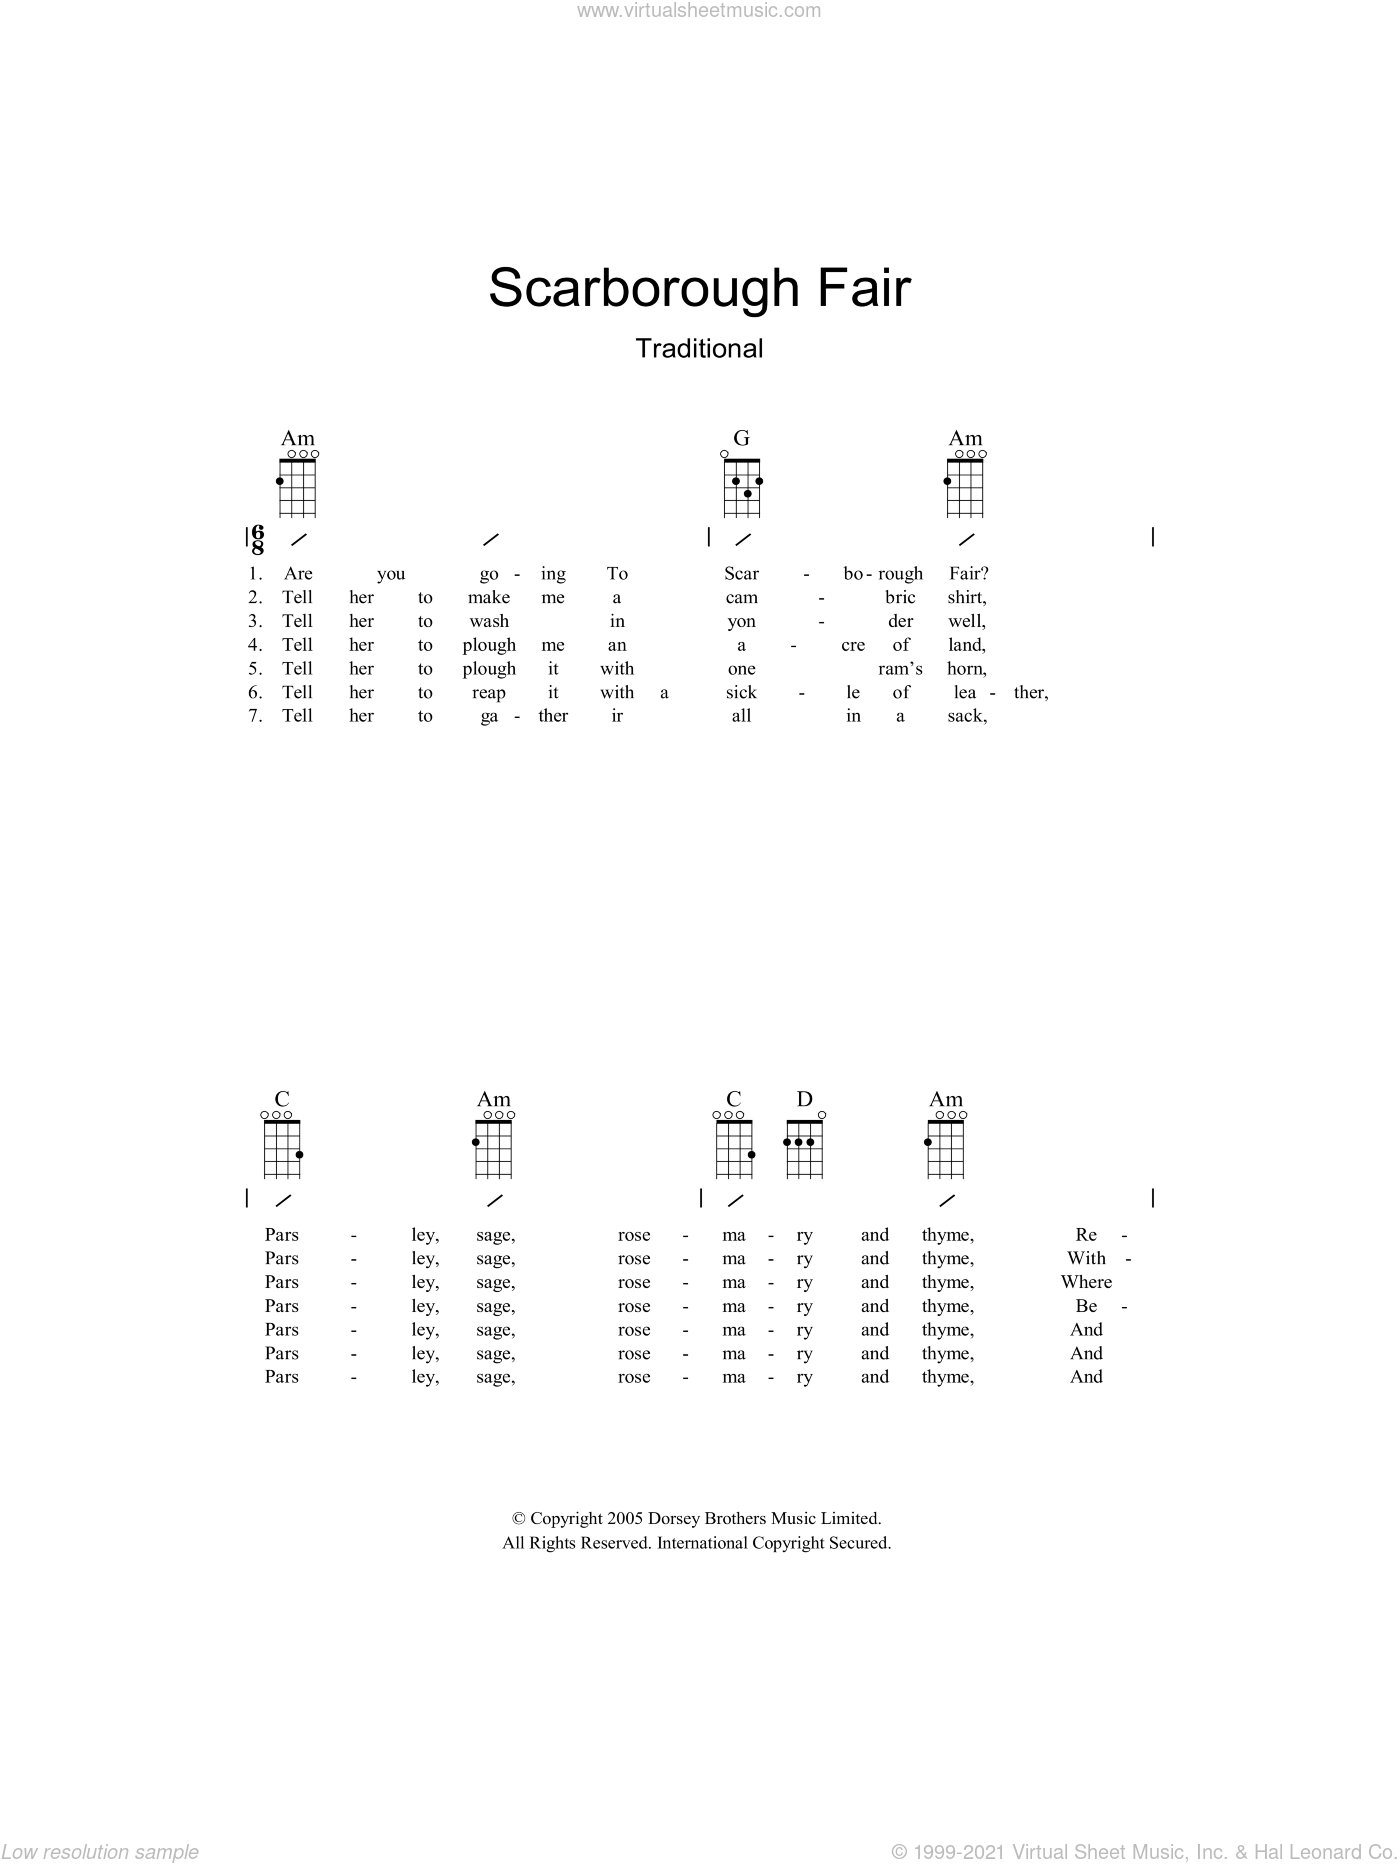 Scarborough Fair sheet music for guitar (chords)  and Traditional English Ballad. Score Image Preview.